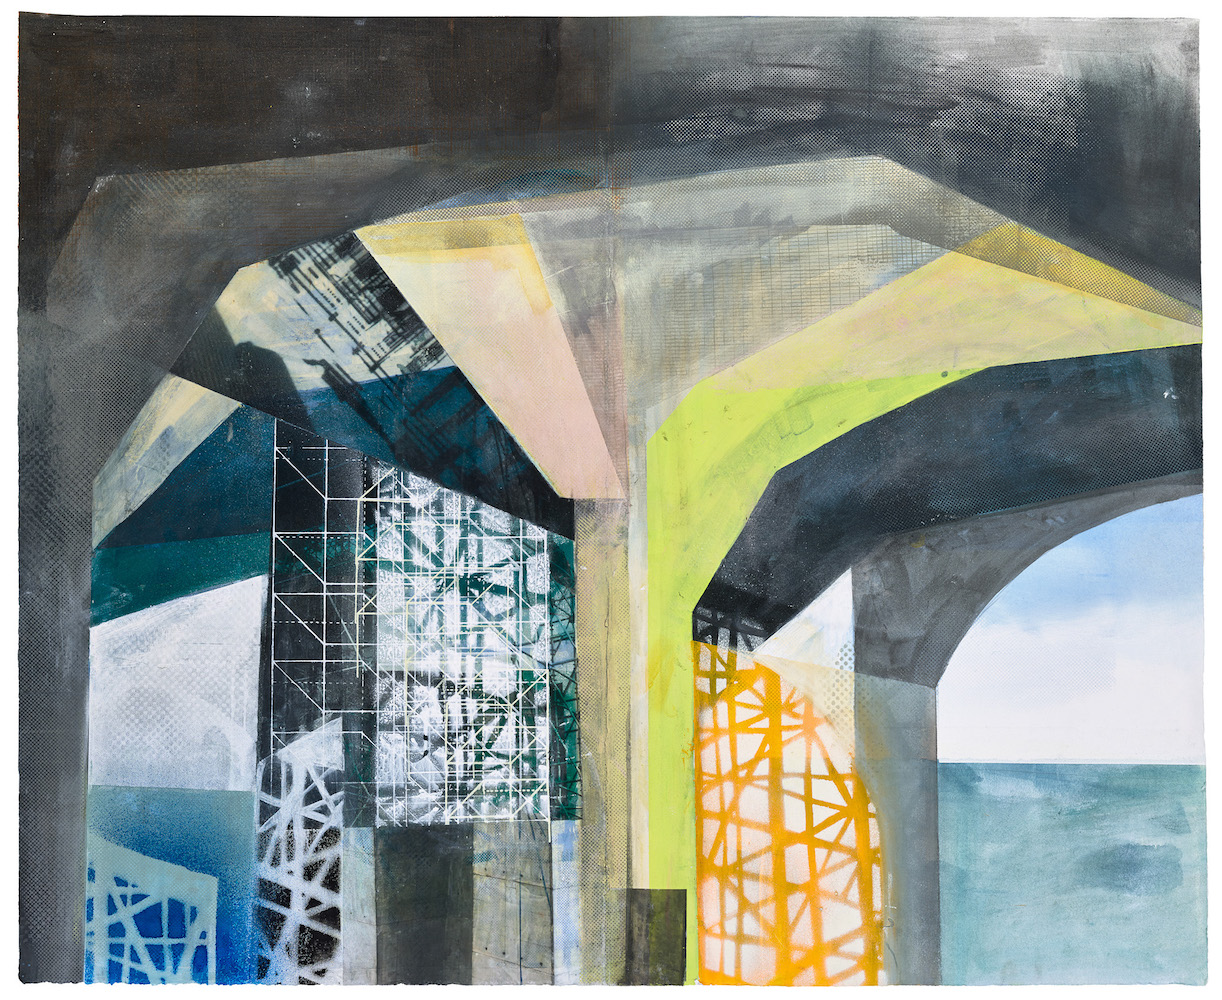 Amanda Knowles, (detail) West Seattle Bridge III, 2021, screenprint, acrylic, and graphite, 30 x 36 inches (#3 of 3 panels)